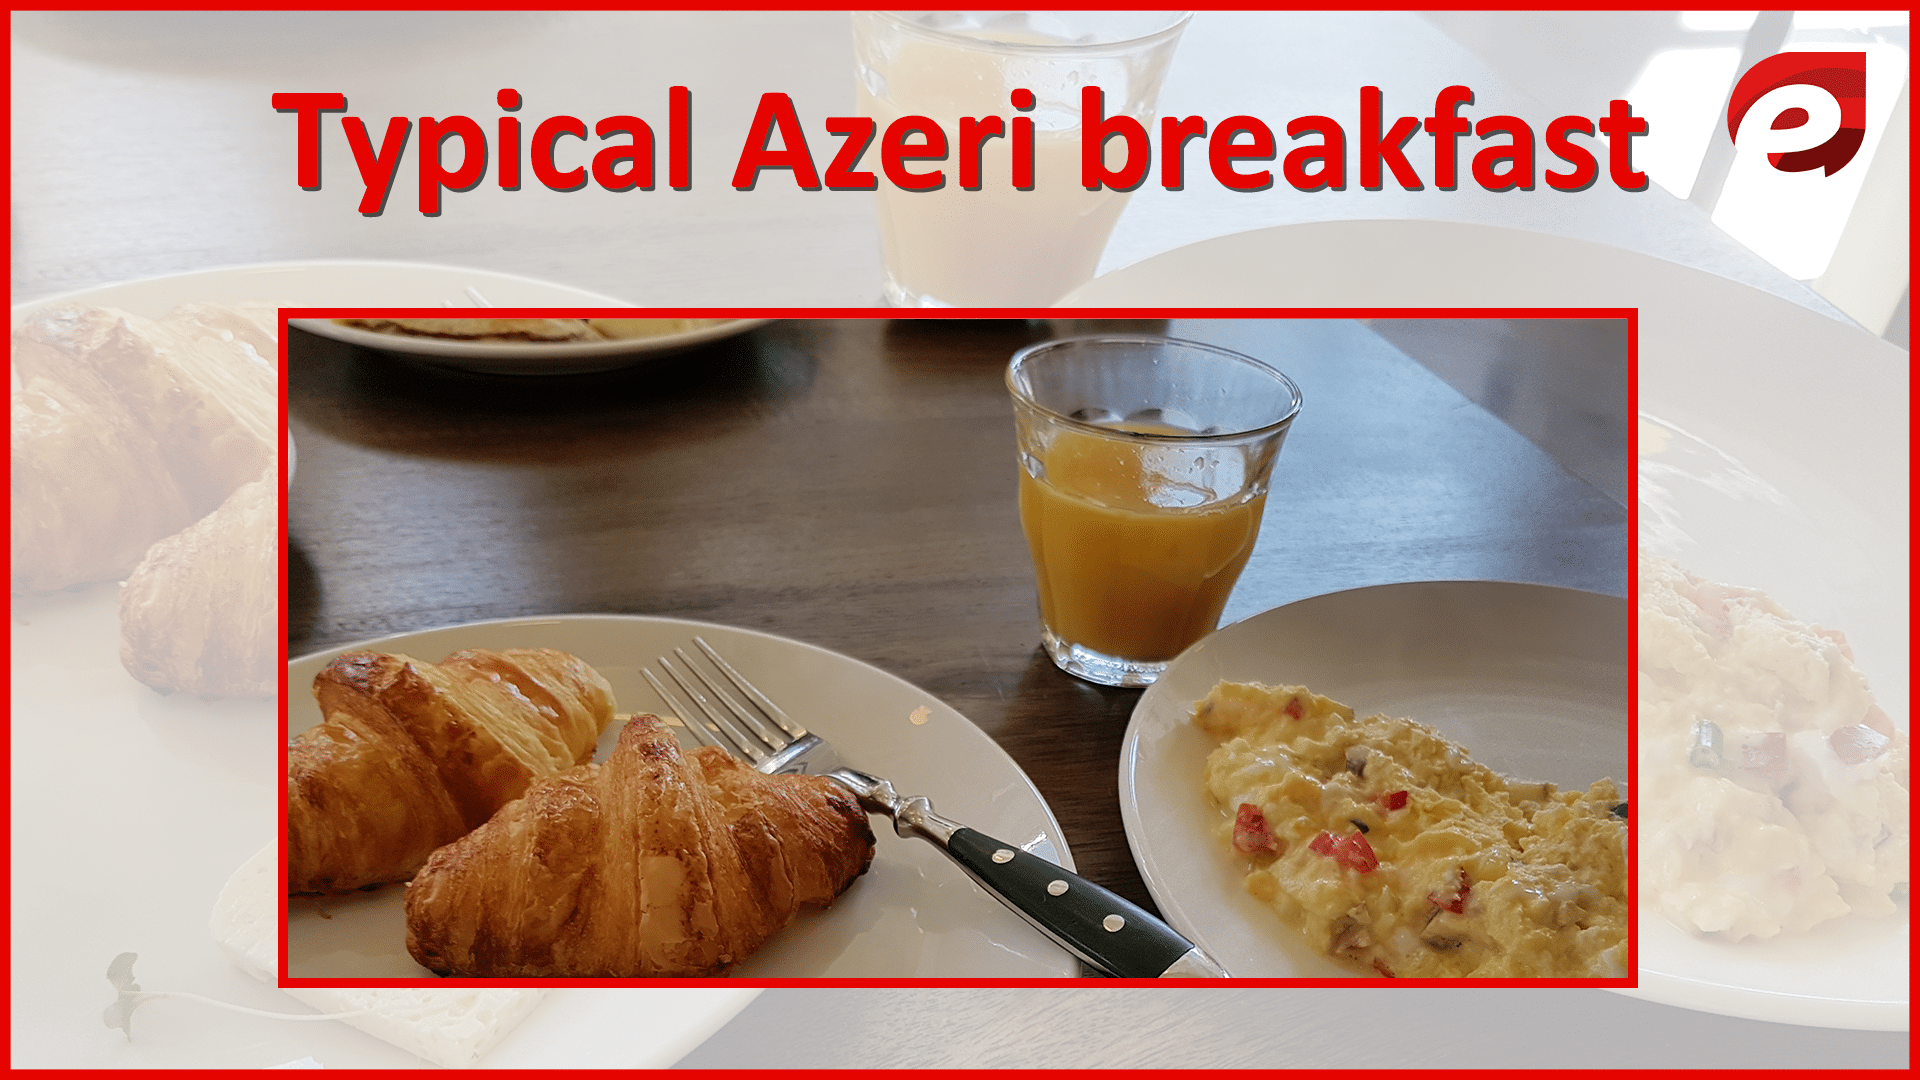 Azerbaijan food- typical Azeri breakfast